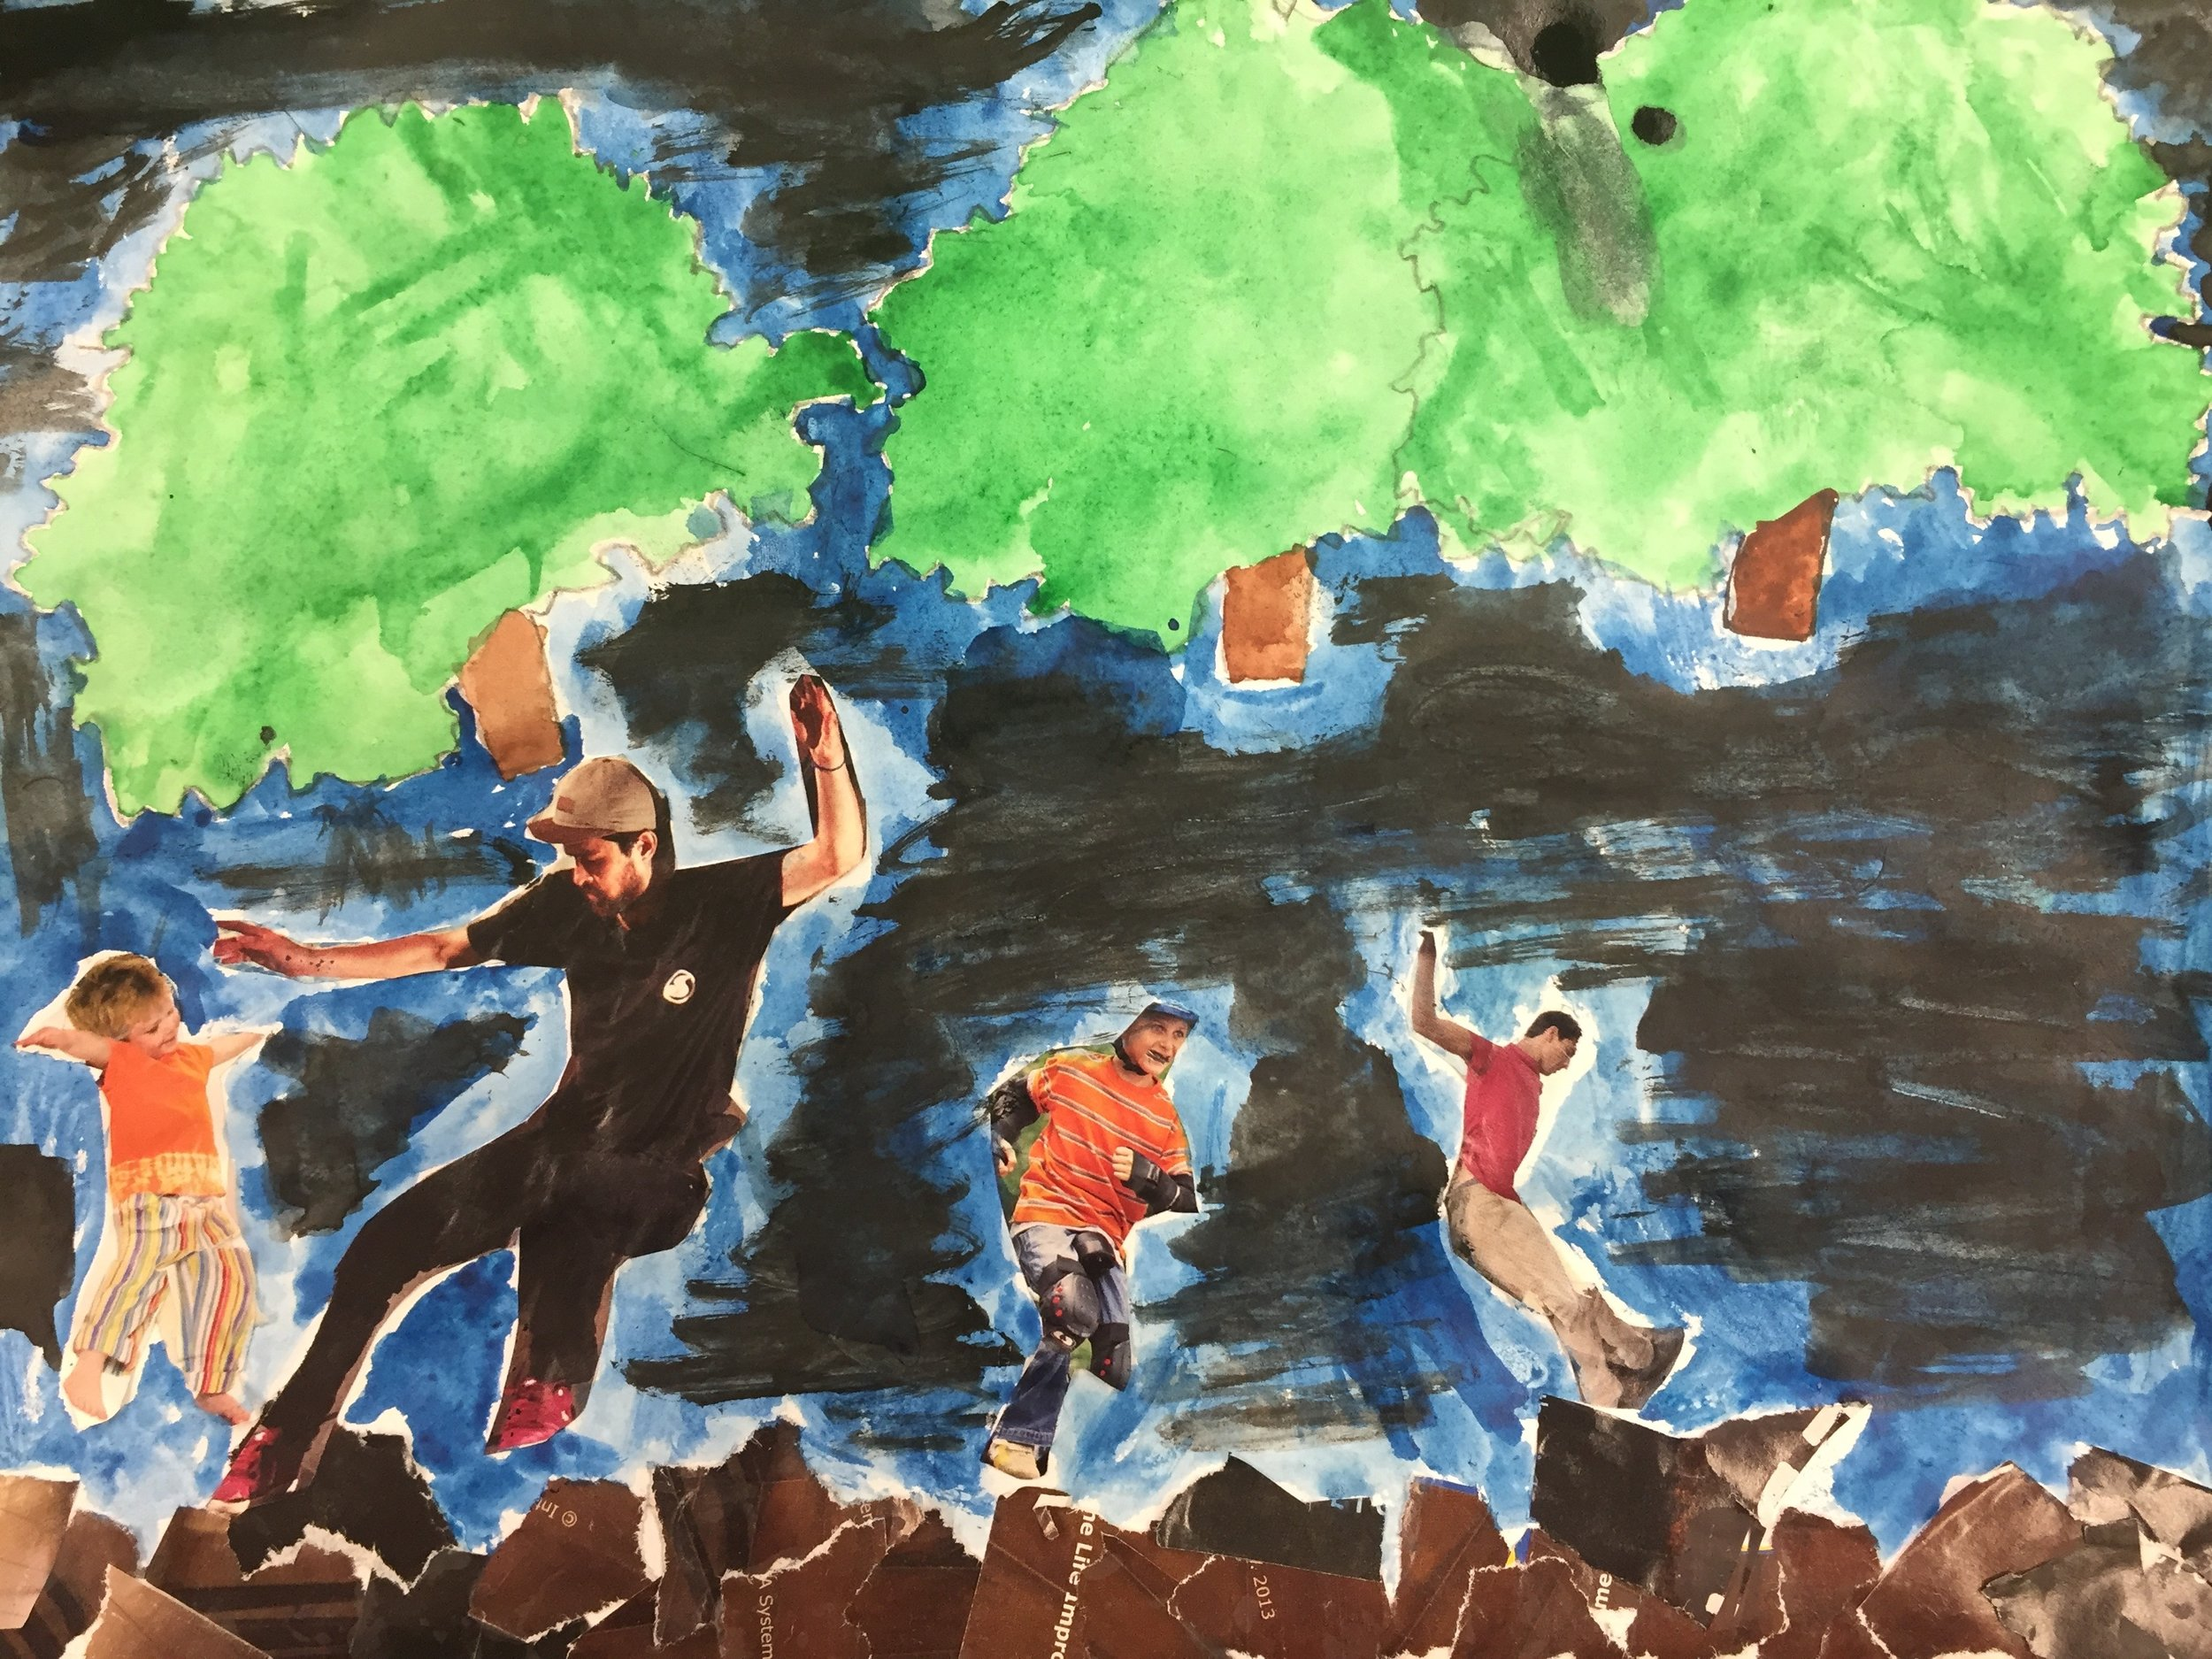 Student painting of landsape with collaged male figures in action